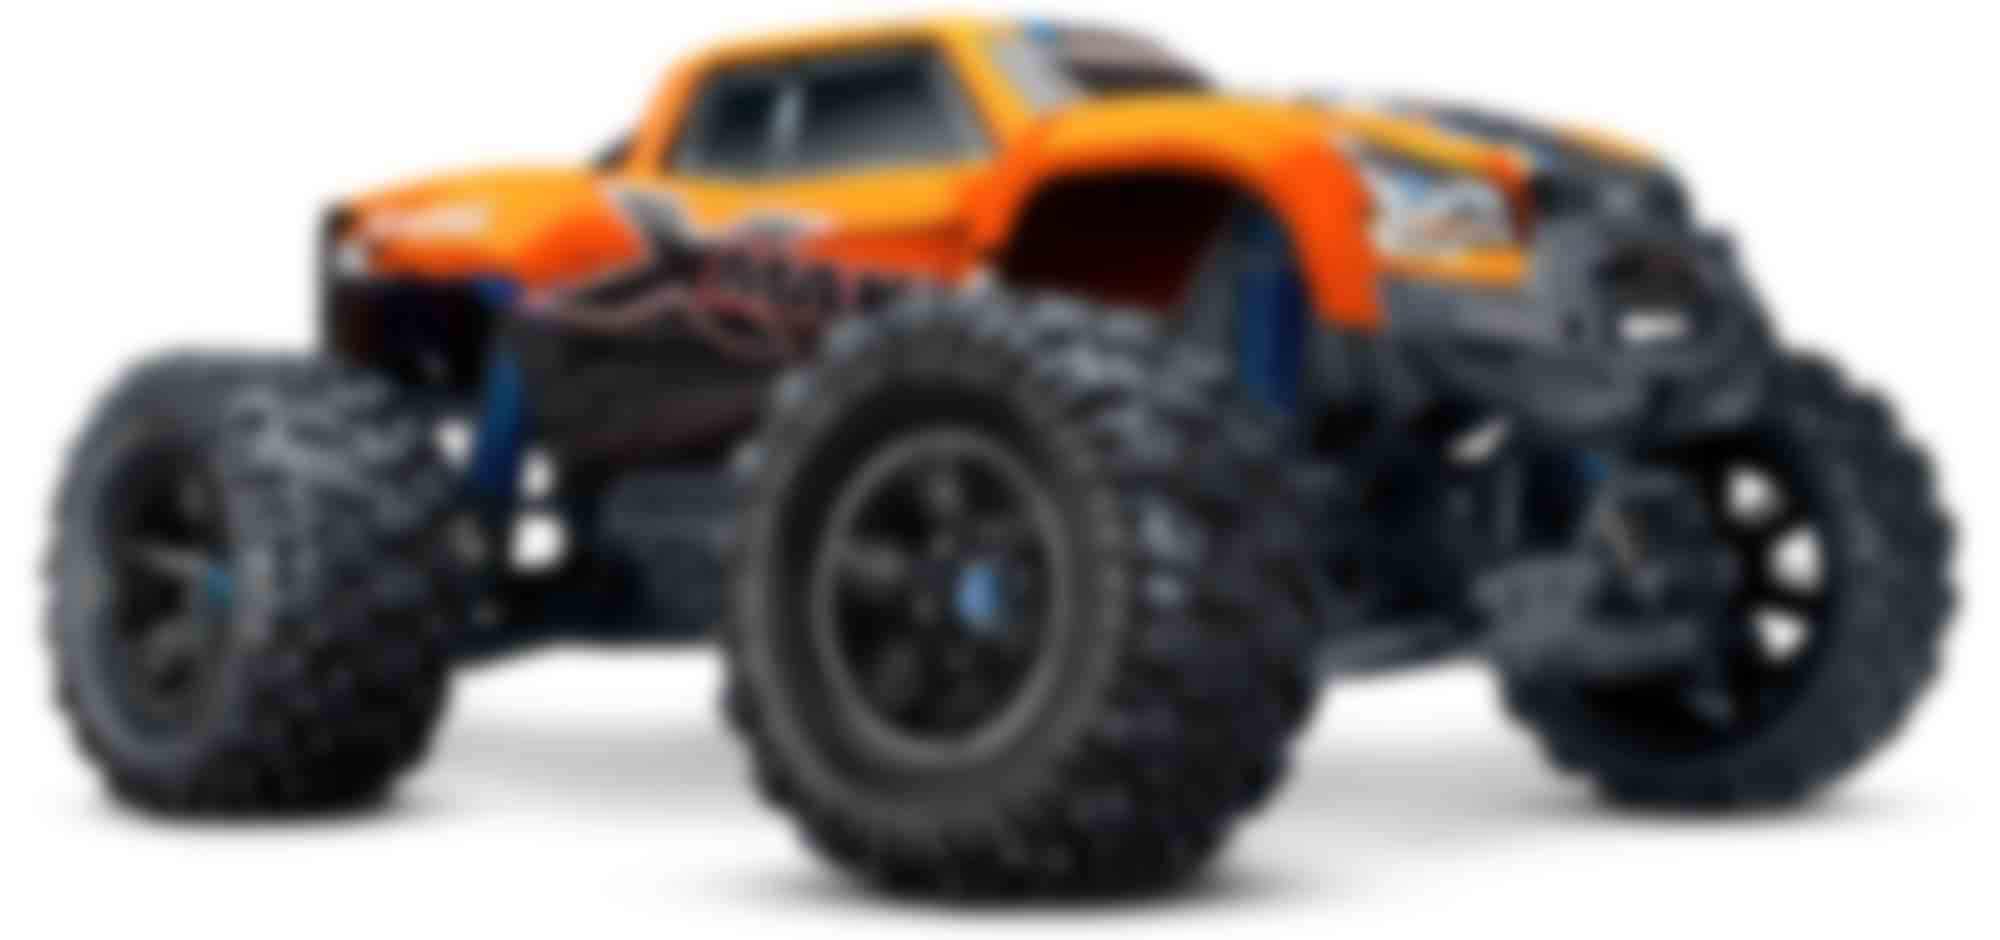 Rc Model Vehicle Parts & Accs Confident Rc Buggy Shock Tower To Reduce Body Weight And Prolong Life